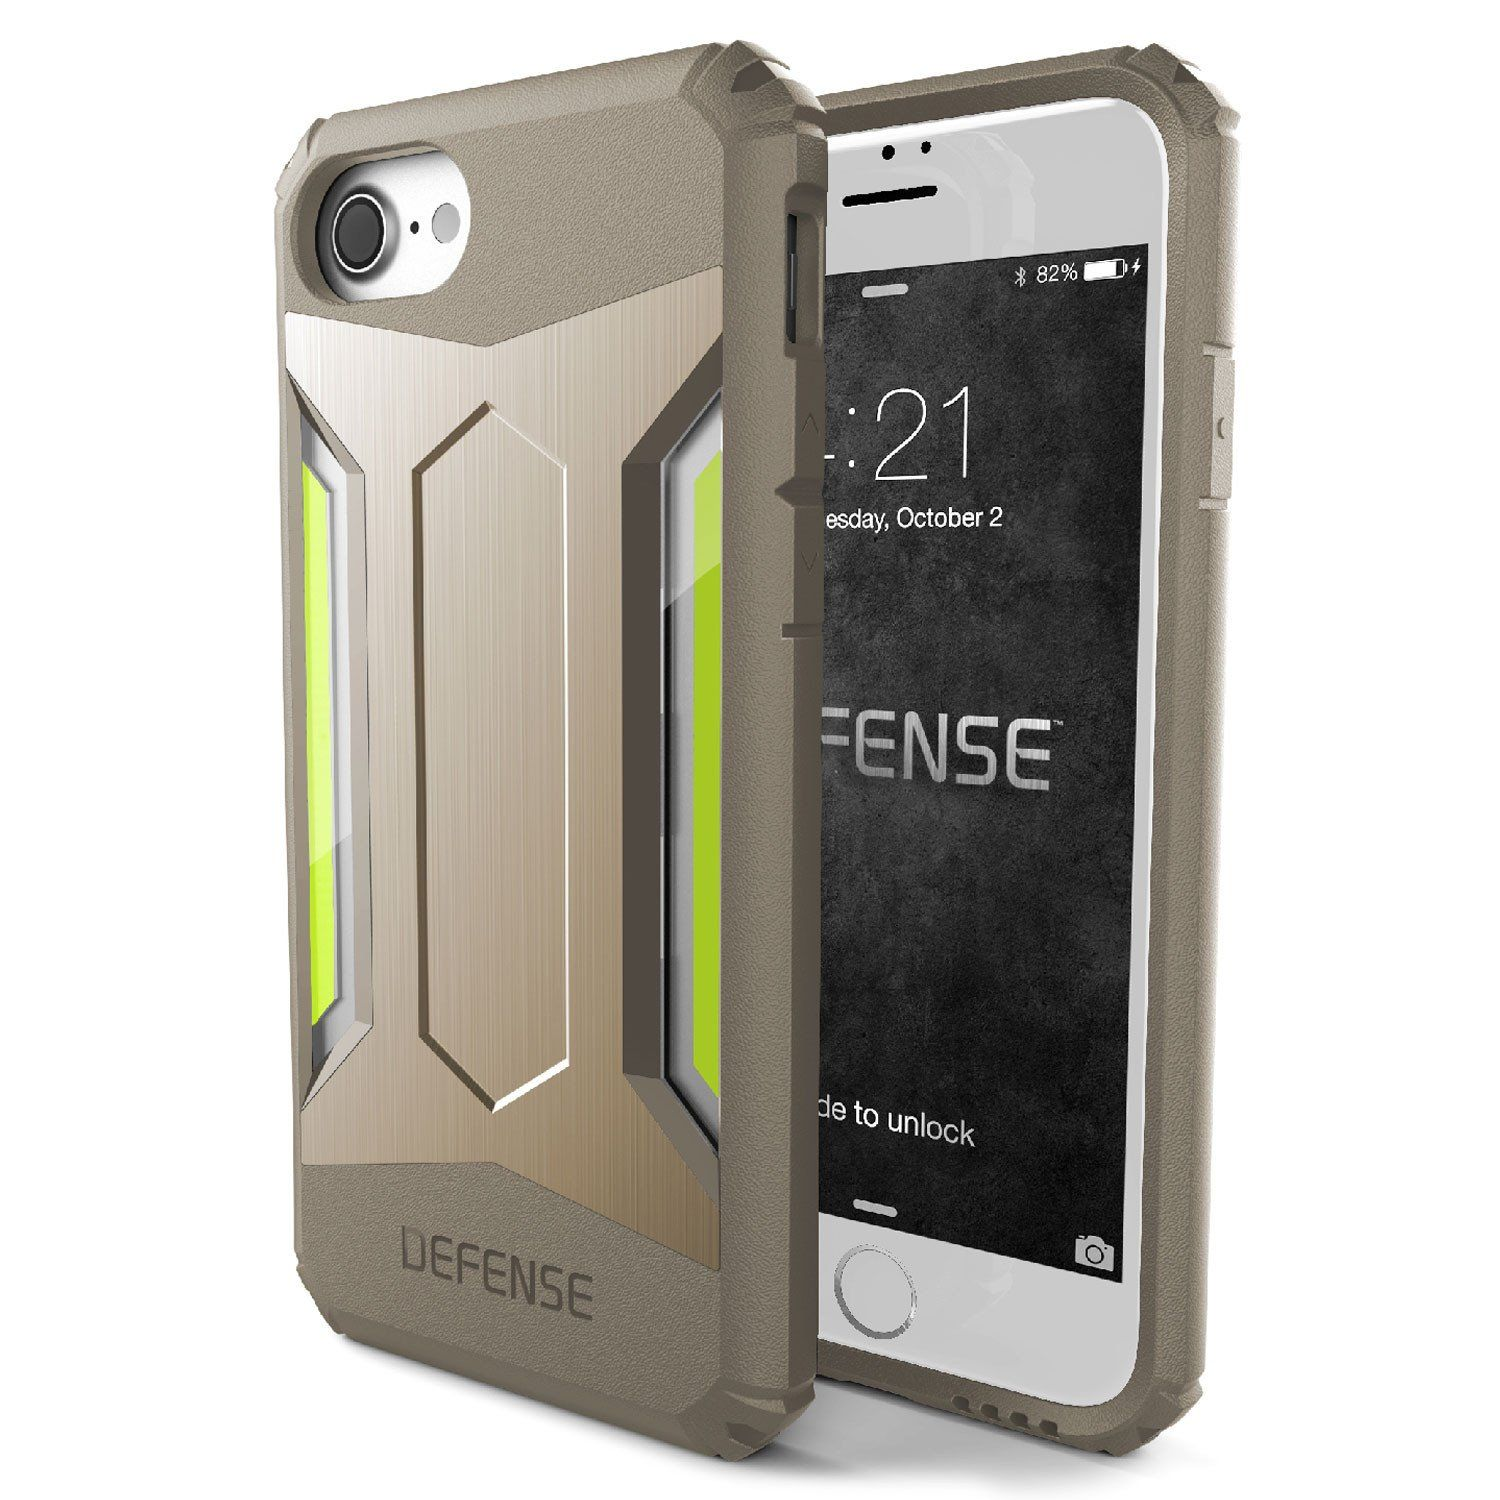 huge selection of ca77b 11b21 iPhone 7 & iPhone 8 Case Defense Gear | Products | Iphone 7 ...